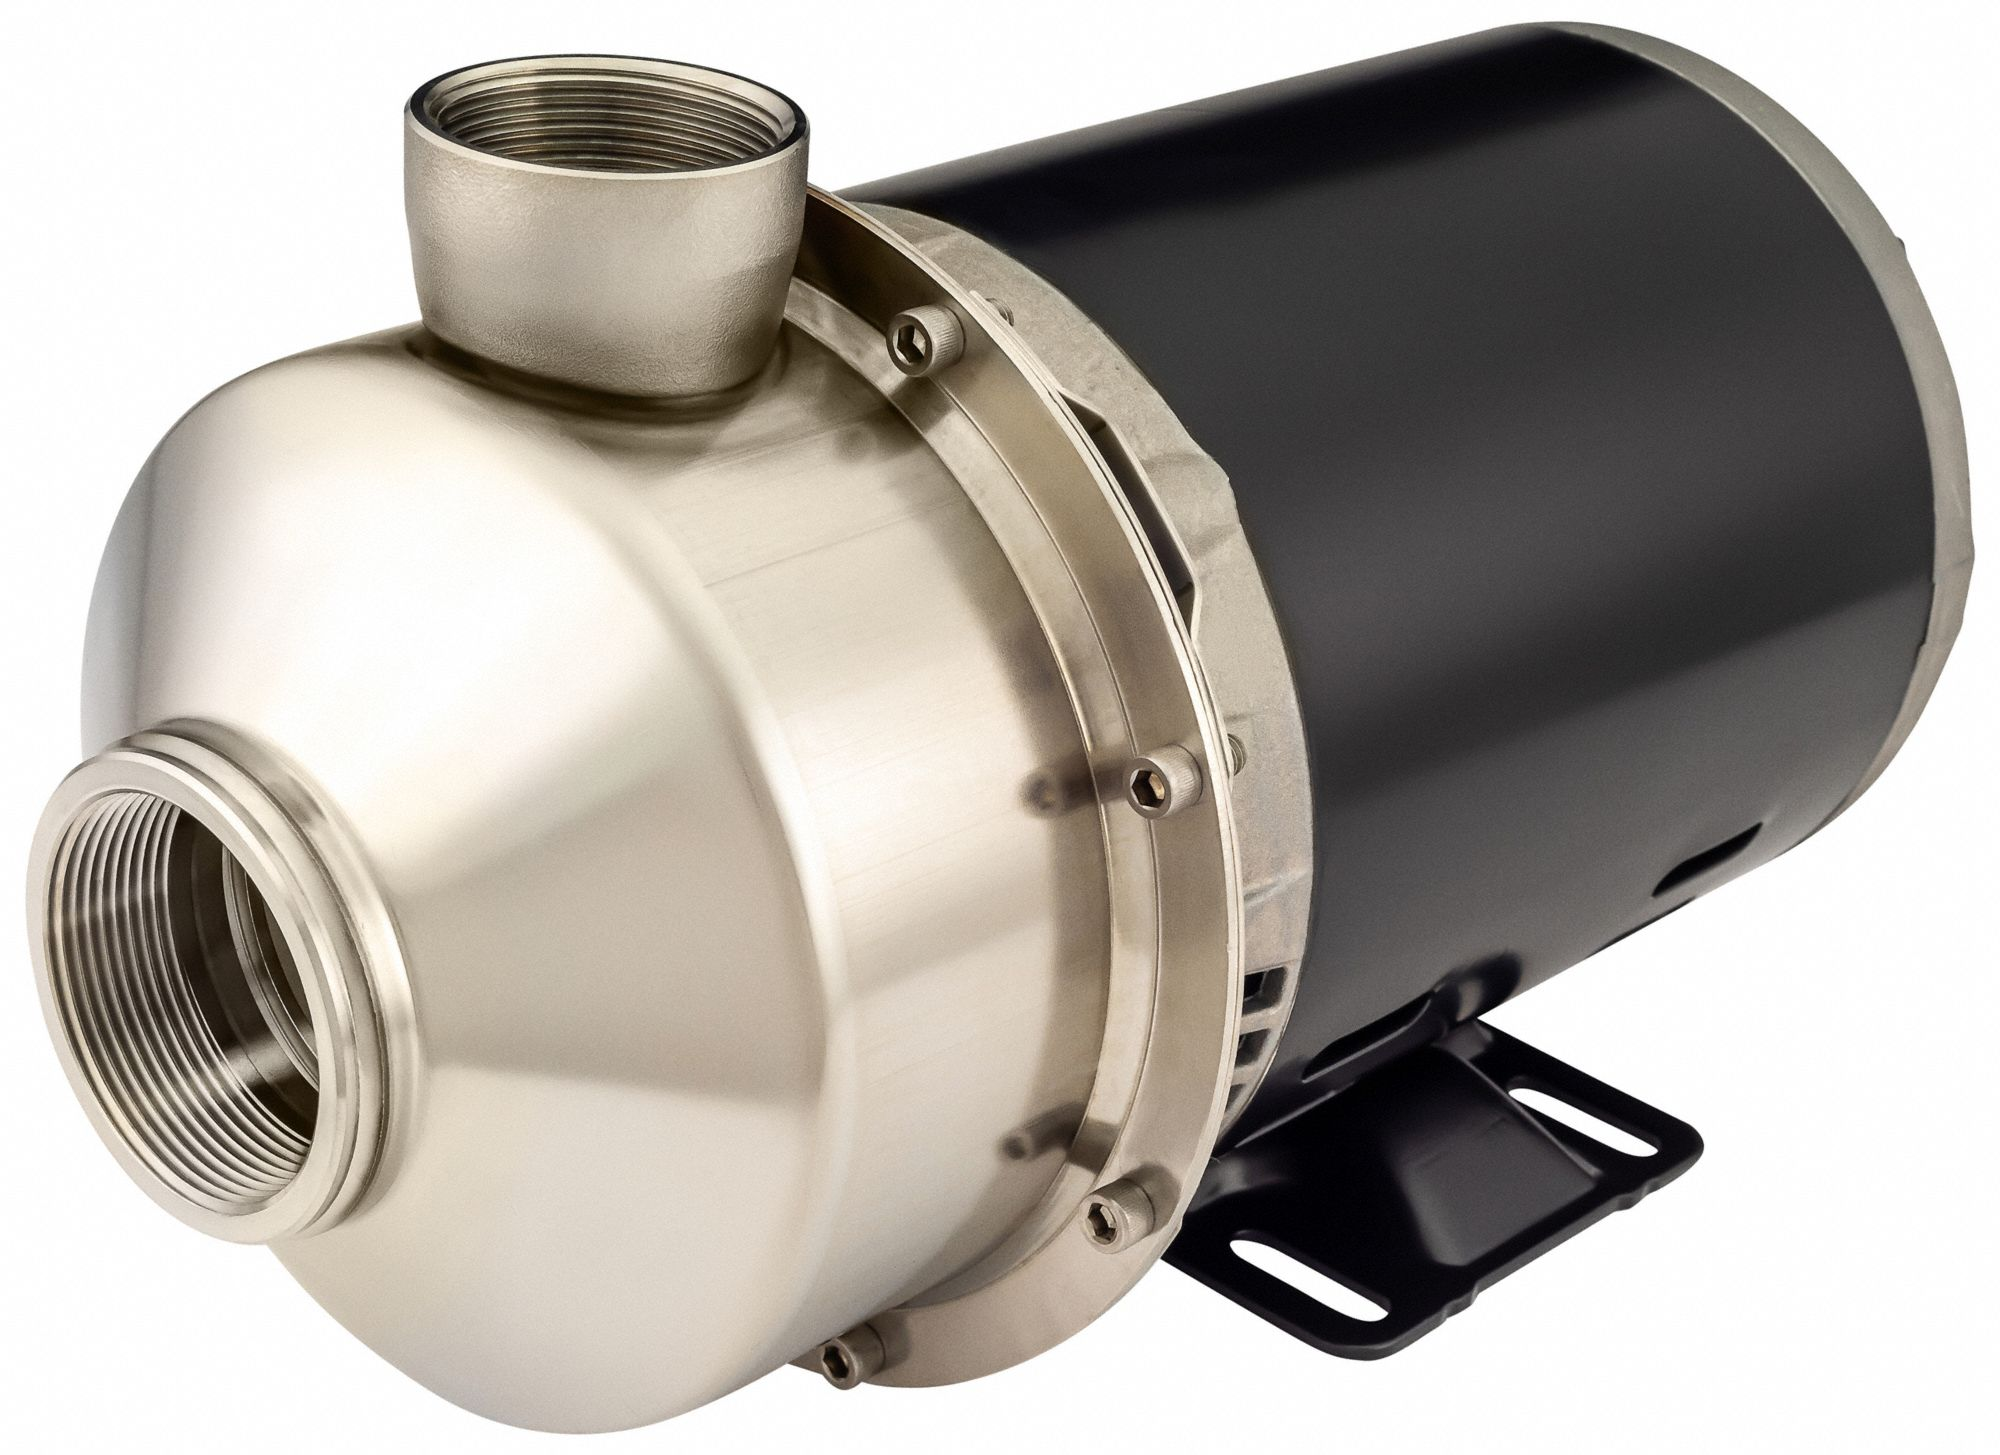 230VAC Totally Enclosed Fan-Cooled Straight Center Discharge Pump, 1-Phase, 2 in NPT Inlet Size